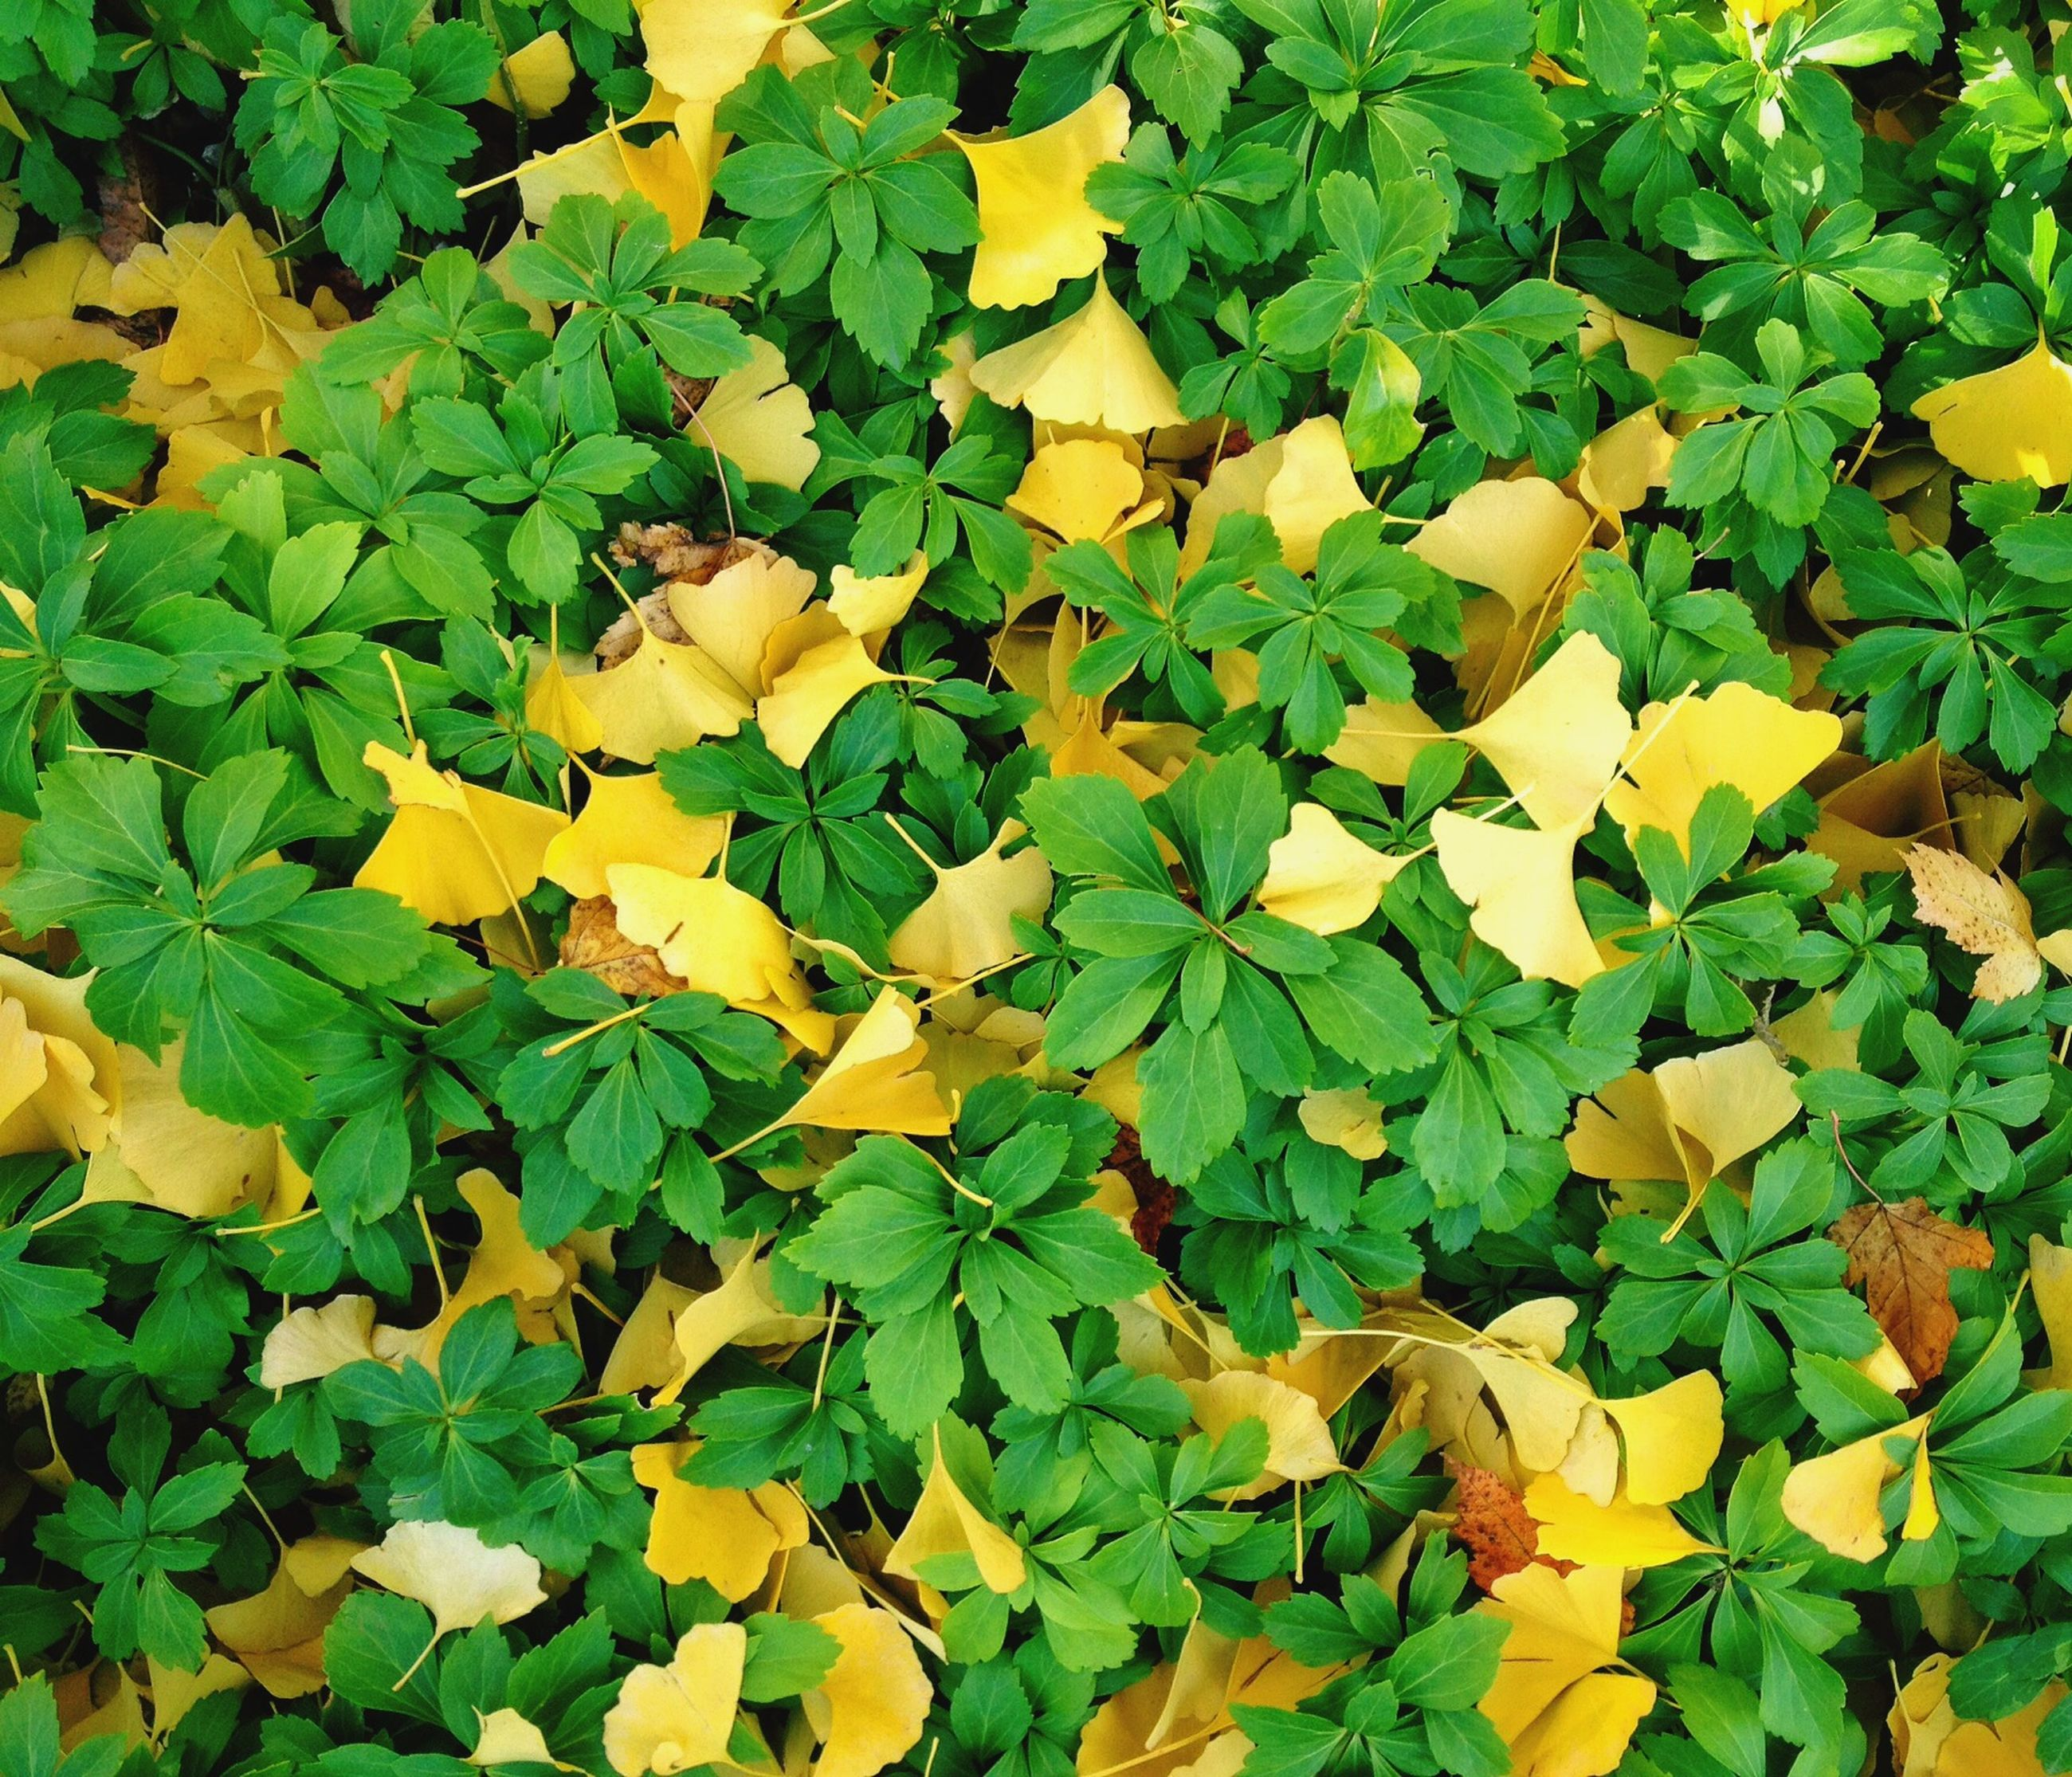 leaf, yellow, high angle view, growth, green color, autumn, season, full frame, nature, beauty in nature, change, leaves, backgrounds, abundance, field, plant, flower, fragility, freshness, tranquility